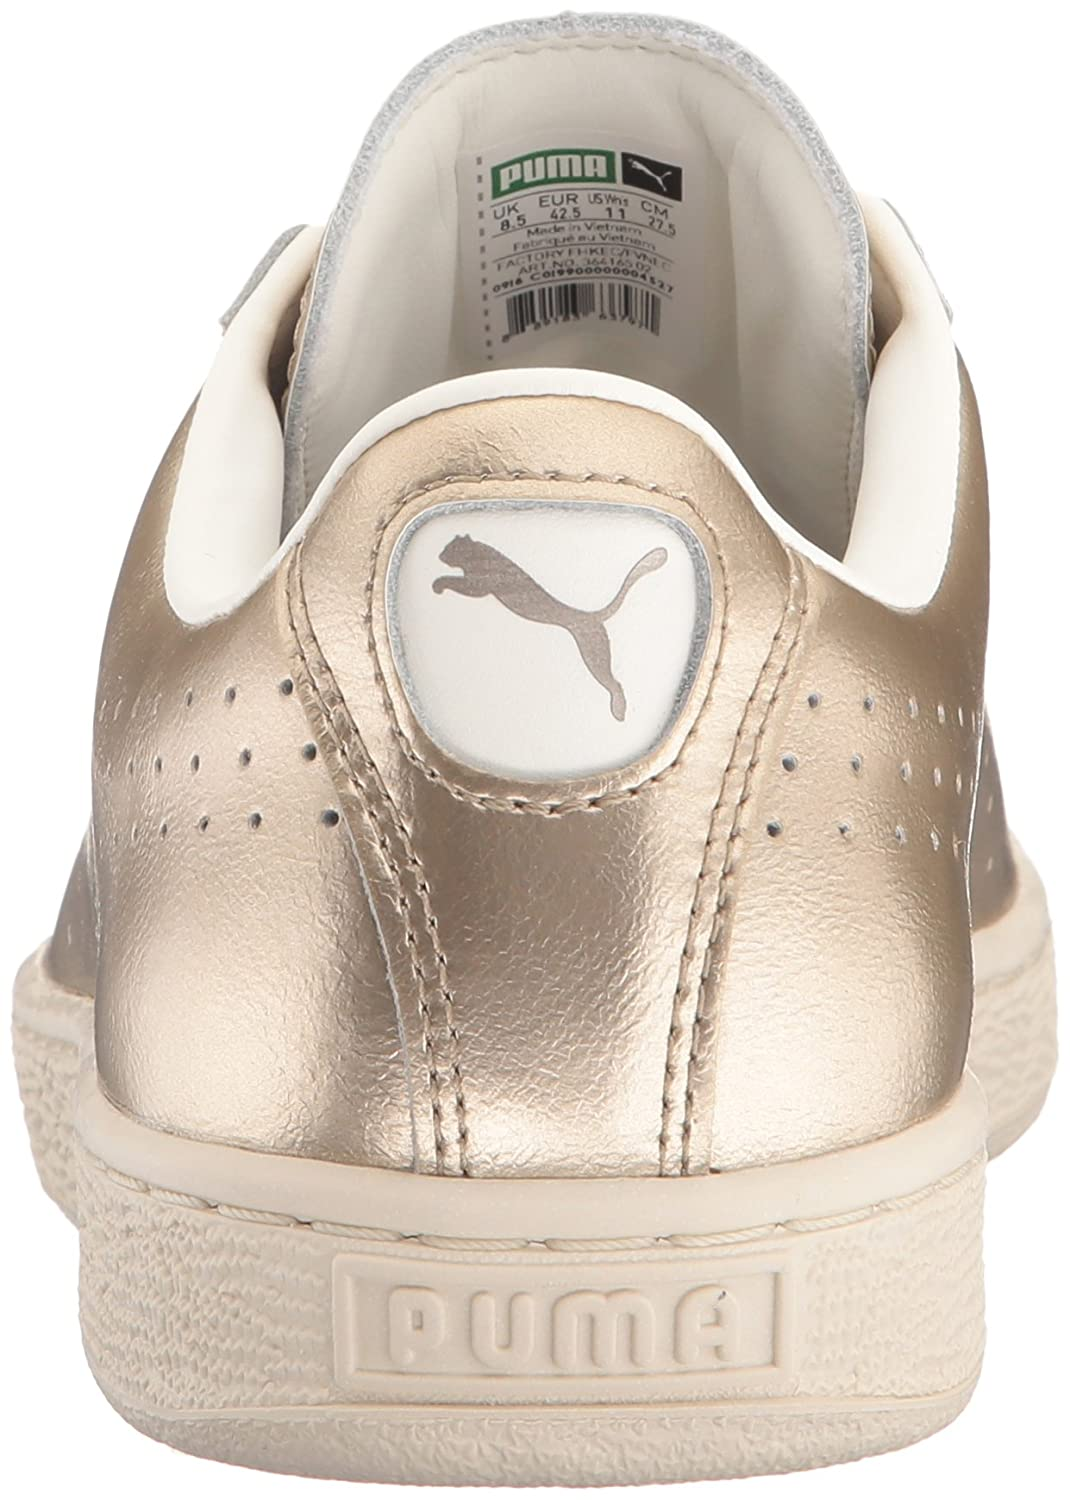 PUMA Women's Basket Classic Citi Metallic 5.5 WN's Fashion Sneaker B01J152GVA 5.5 Metallic M US|Silver Gold-whisper 50bb42